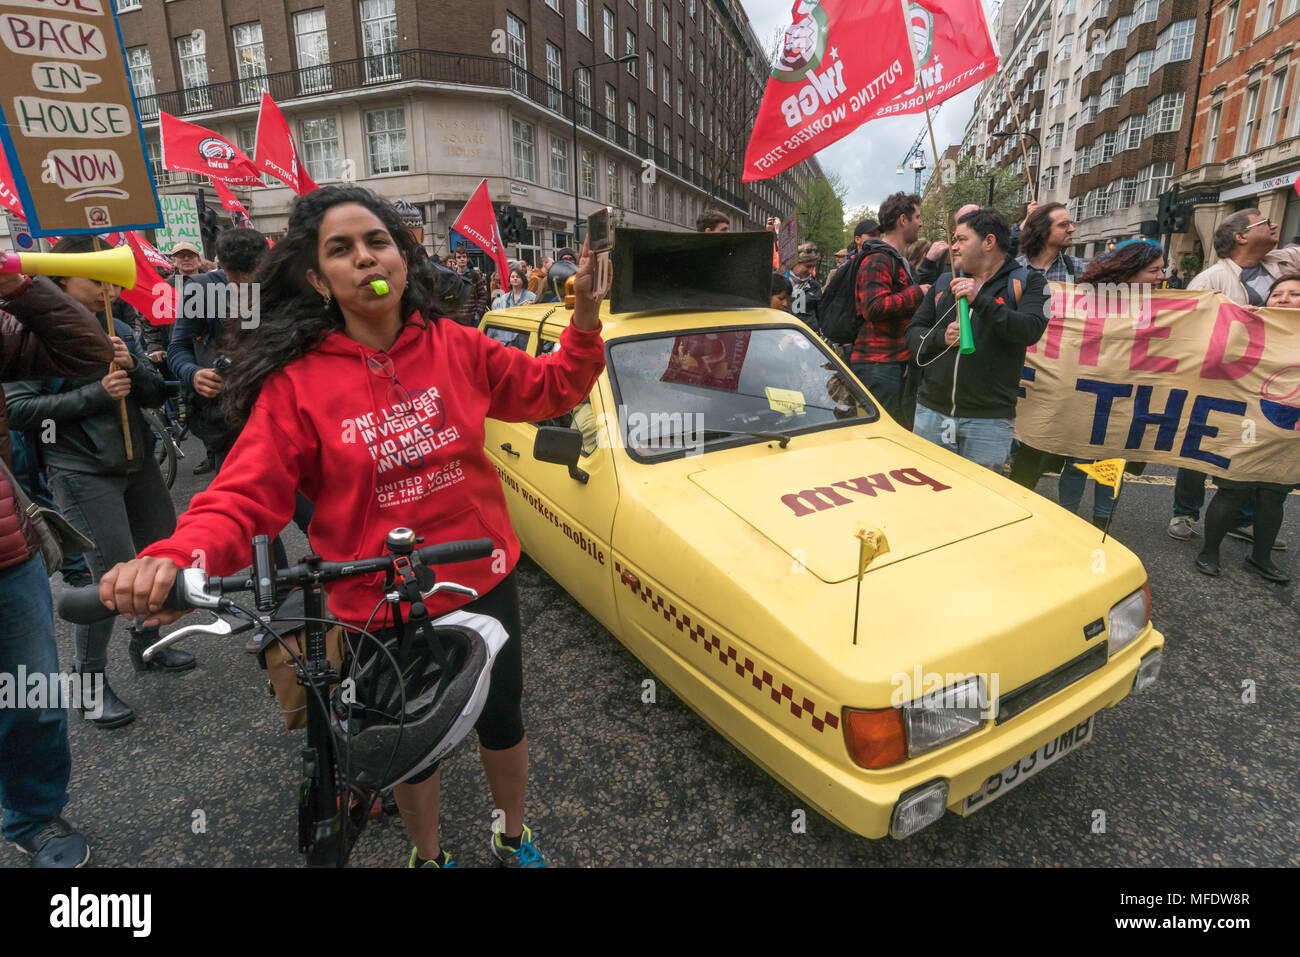 London, UK. 25th April 2018. The Precarious Workers Mobile and marchers briefly block the street on their march from the rally  by workers, students and other trade unionists supporting over 100 cleaners, porters, security officers, receptionists, gardeners, post room staff and audiovisual staff in the Independent Workers Union of Great Britain - IWGB at the end of the first day of a two day strike at the University of London central administration. The workers, employed by various outsourcing companies are demanding to be directly employed by the University, and receive the same conditions an - Stock Image